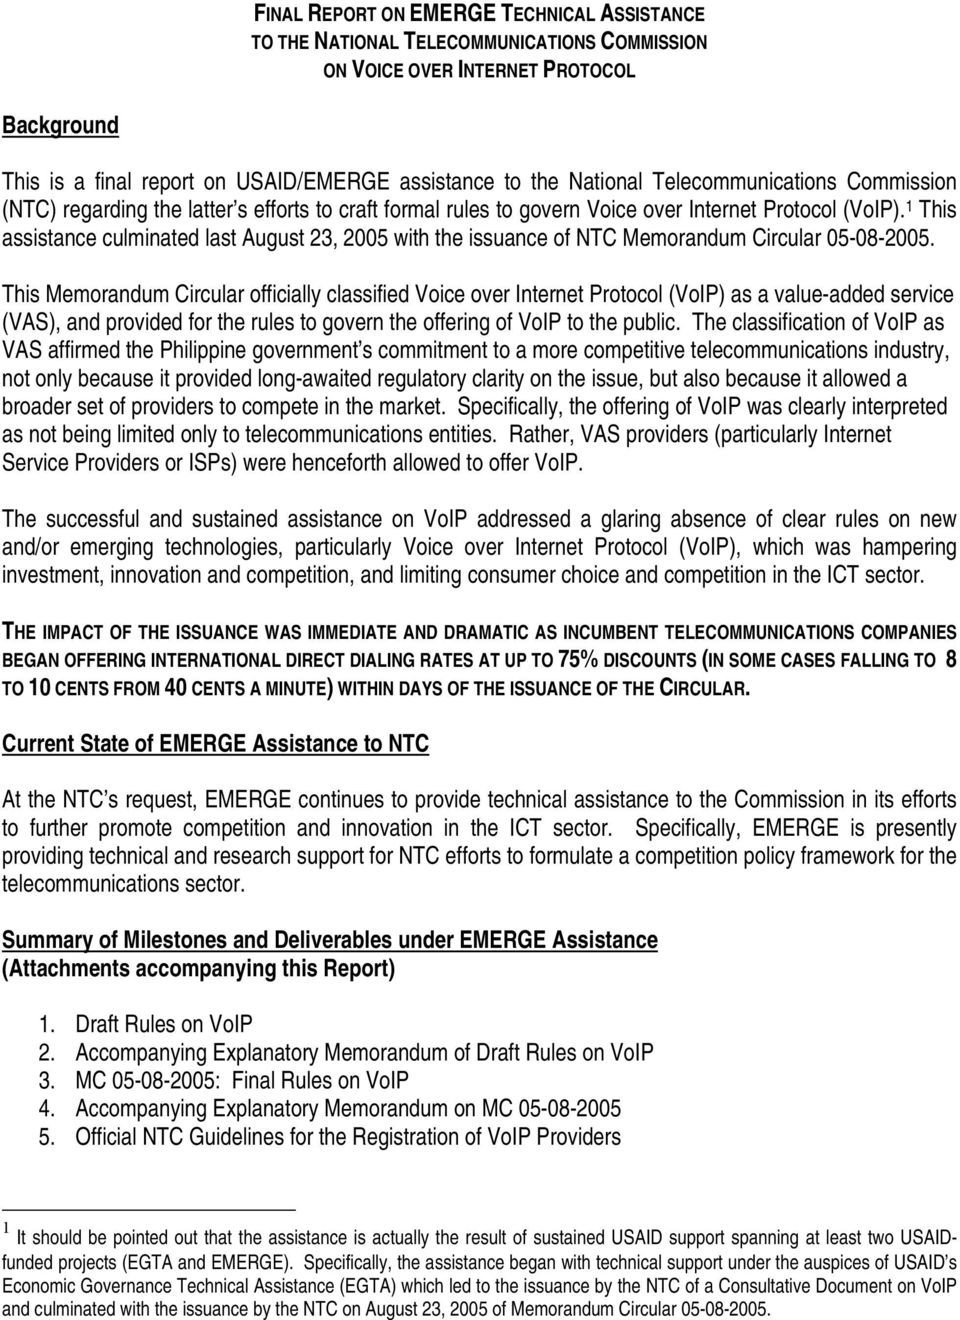 1 This assistance culminated last August 23, 2005 with the issuance of NTC Memorandum Circular 05-08-2005.